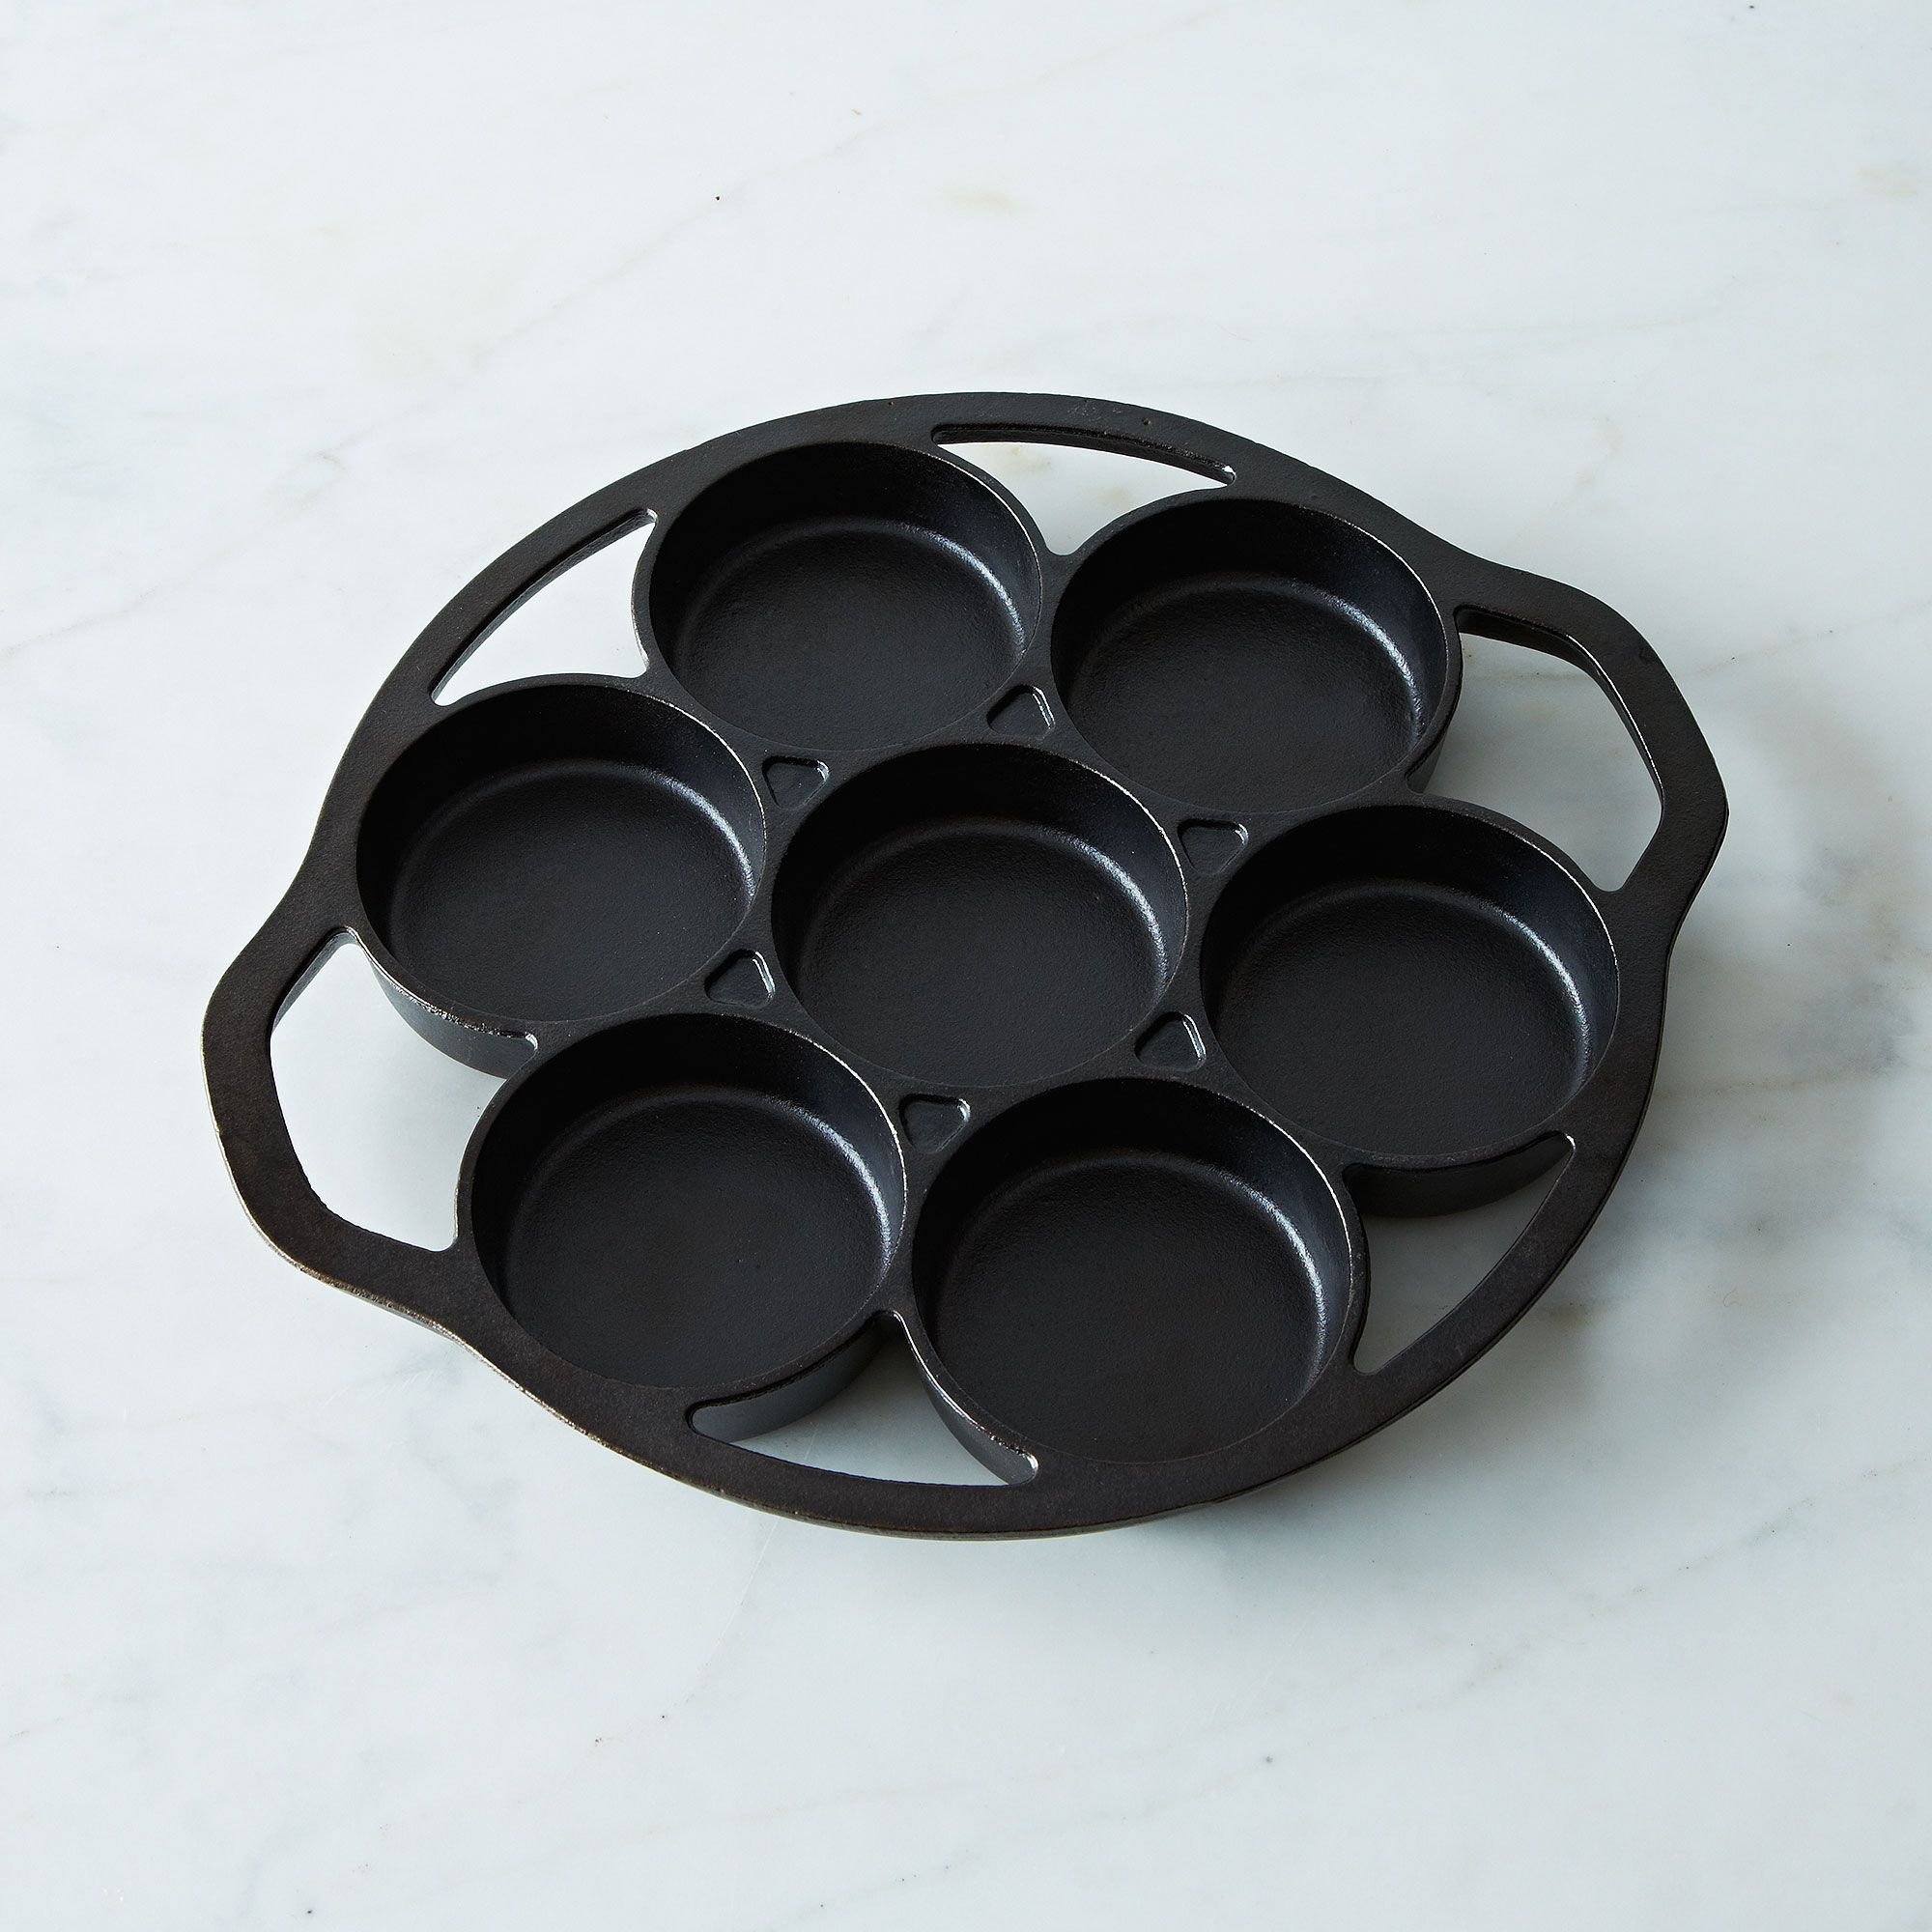 77b29b44-c0d3-4cc6-a8aa-a04ba4fc1eac--2014-0113_jes-restaurant-supply_lodge-cast-iron-drop-biscuit-pan-005